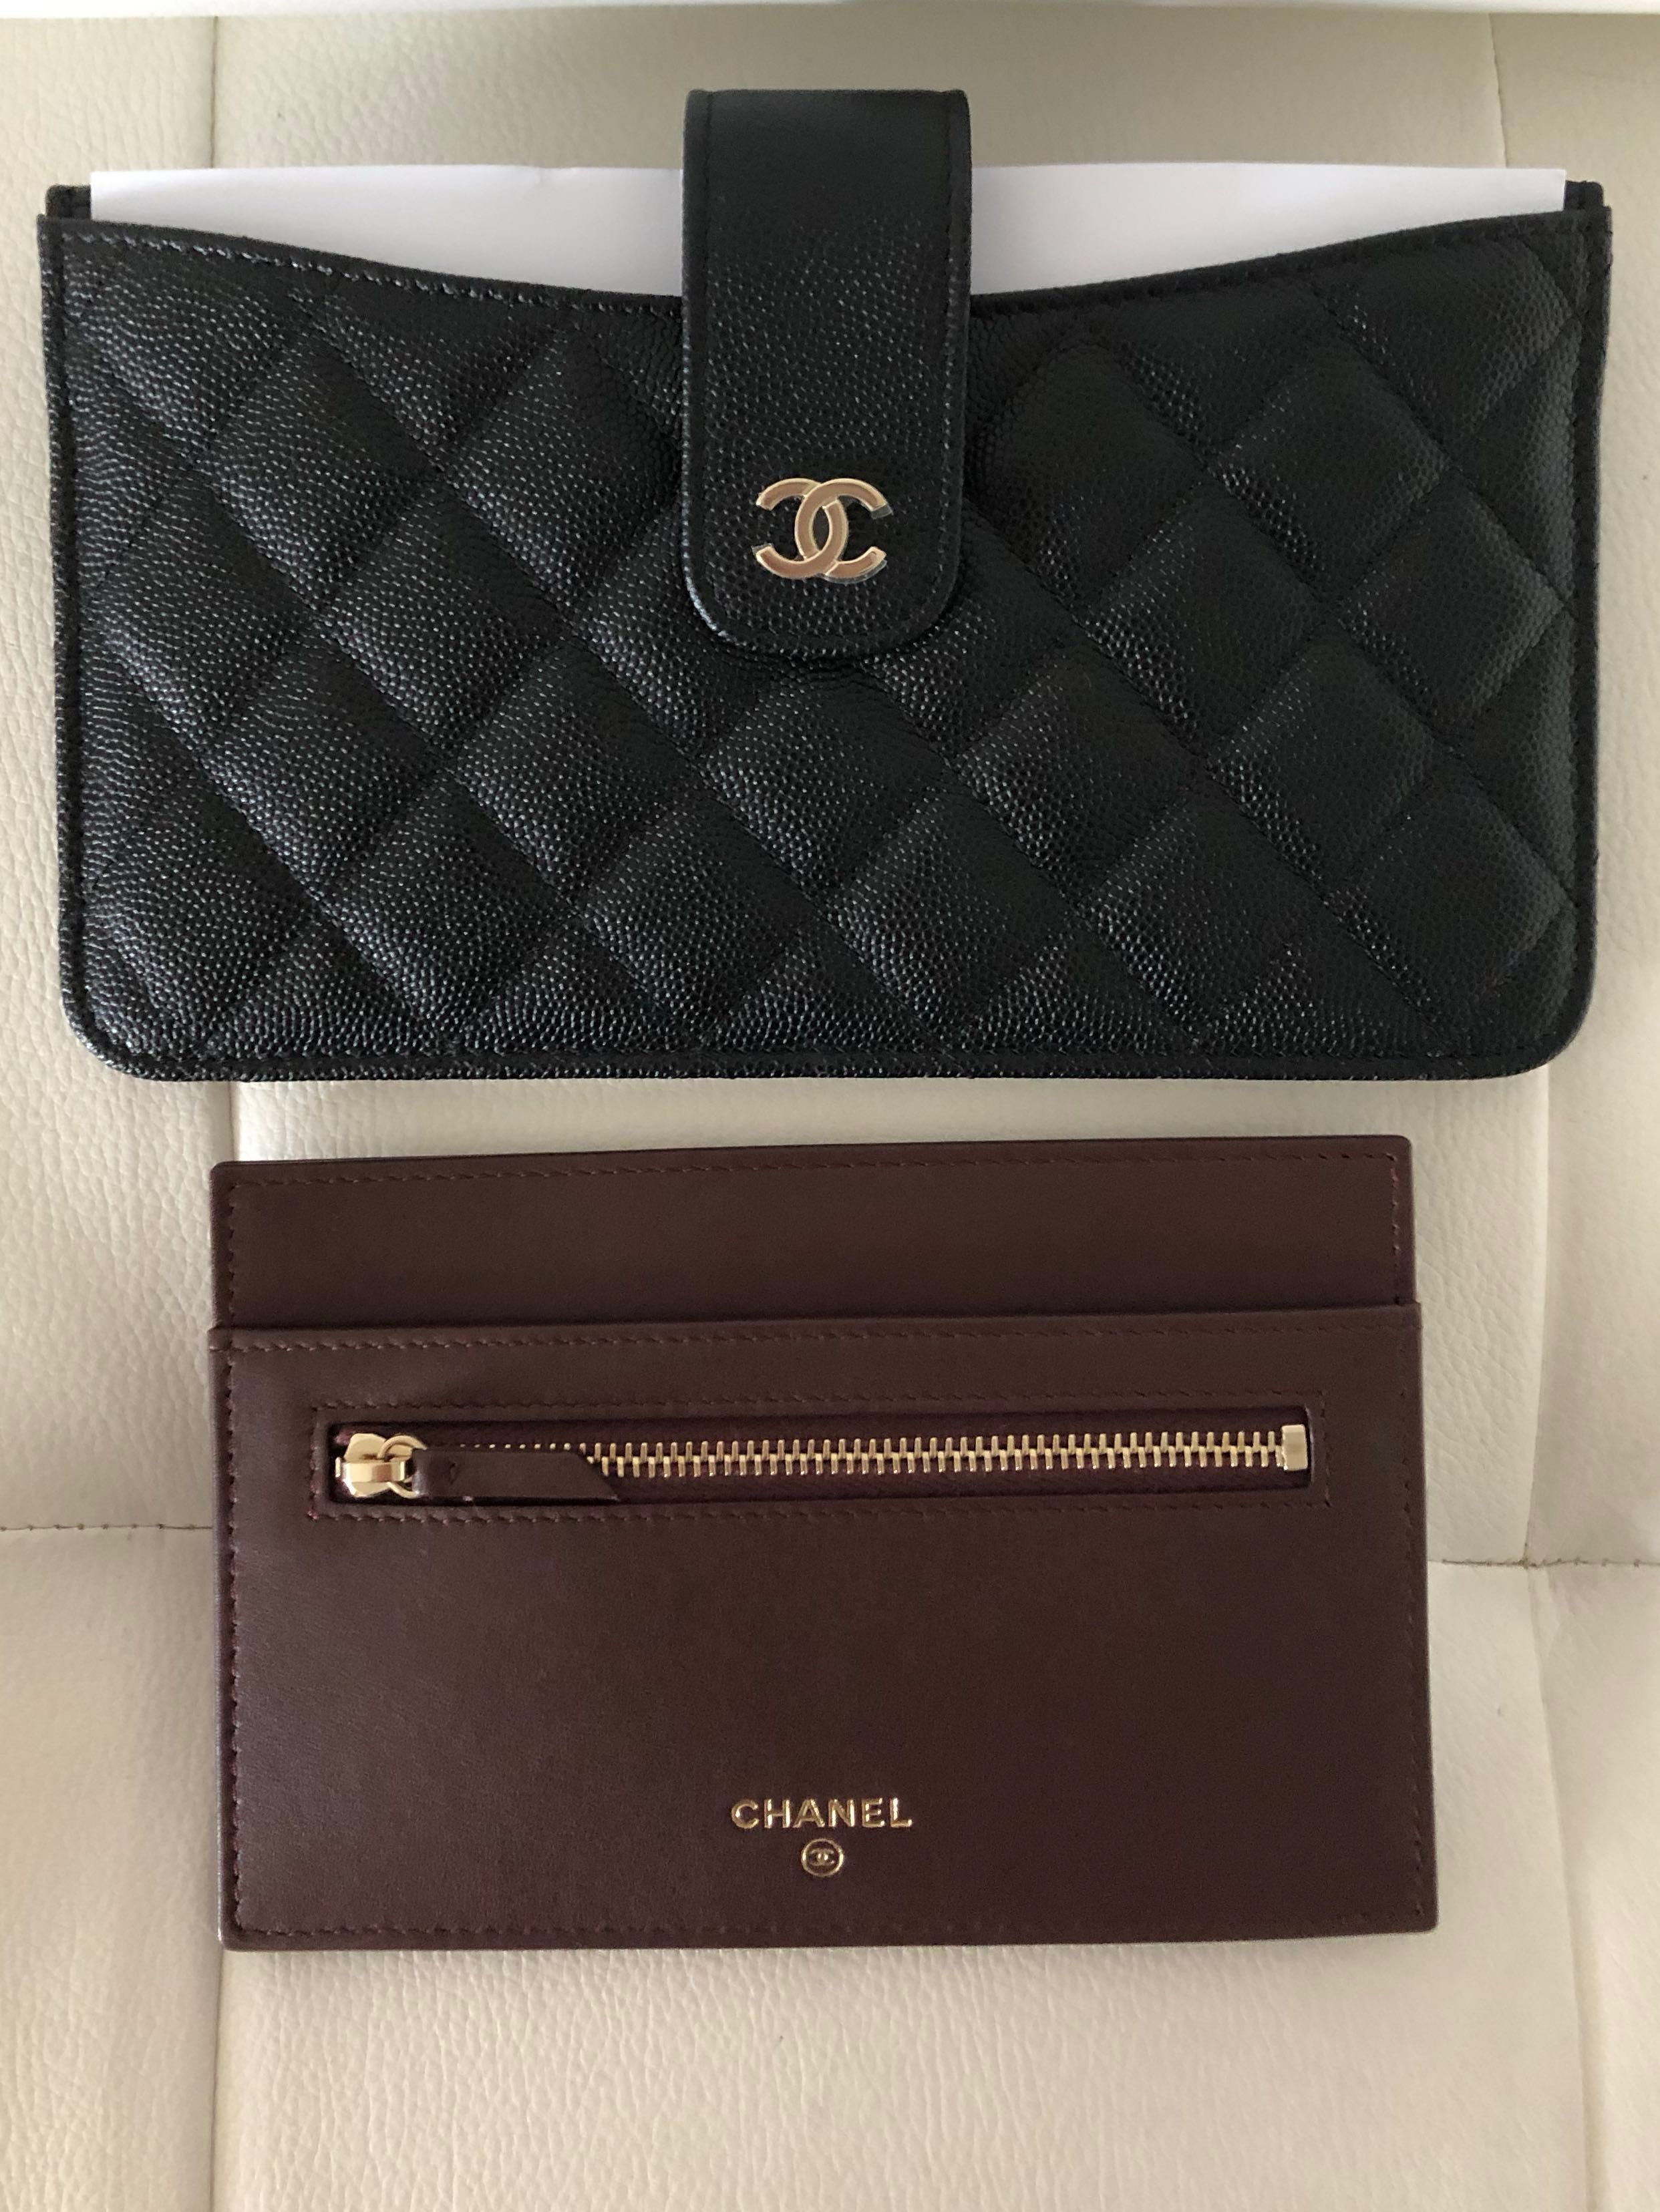 5e65fa2870dc 19C Chanel Pouch/Wallet/Travel Pouch, Luxury, Bags & Wallets, Wallets on  Carousell